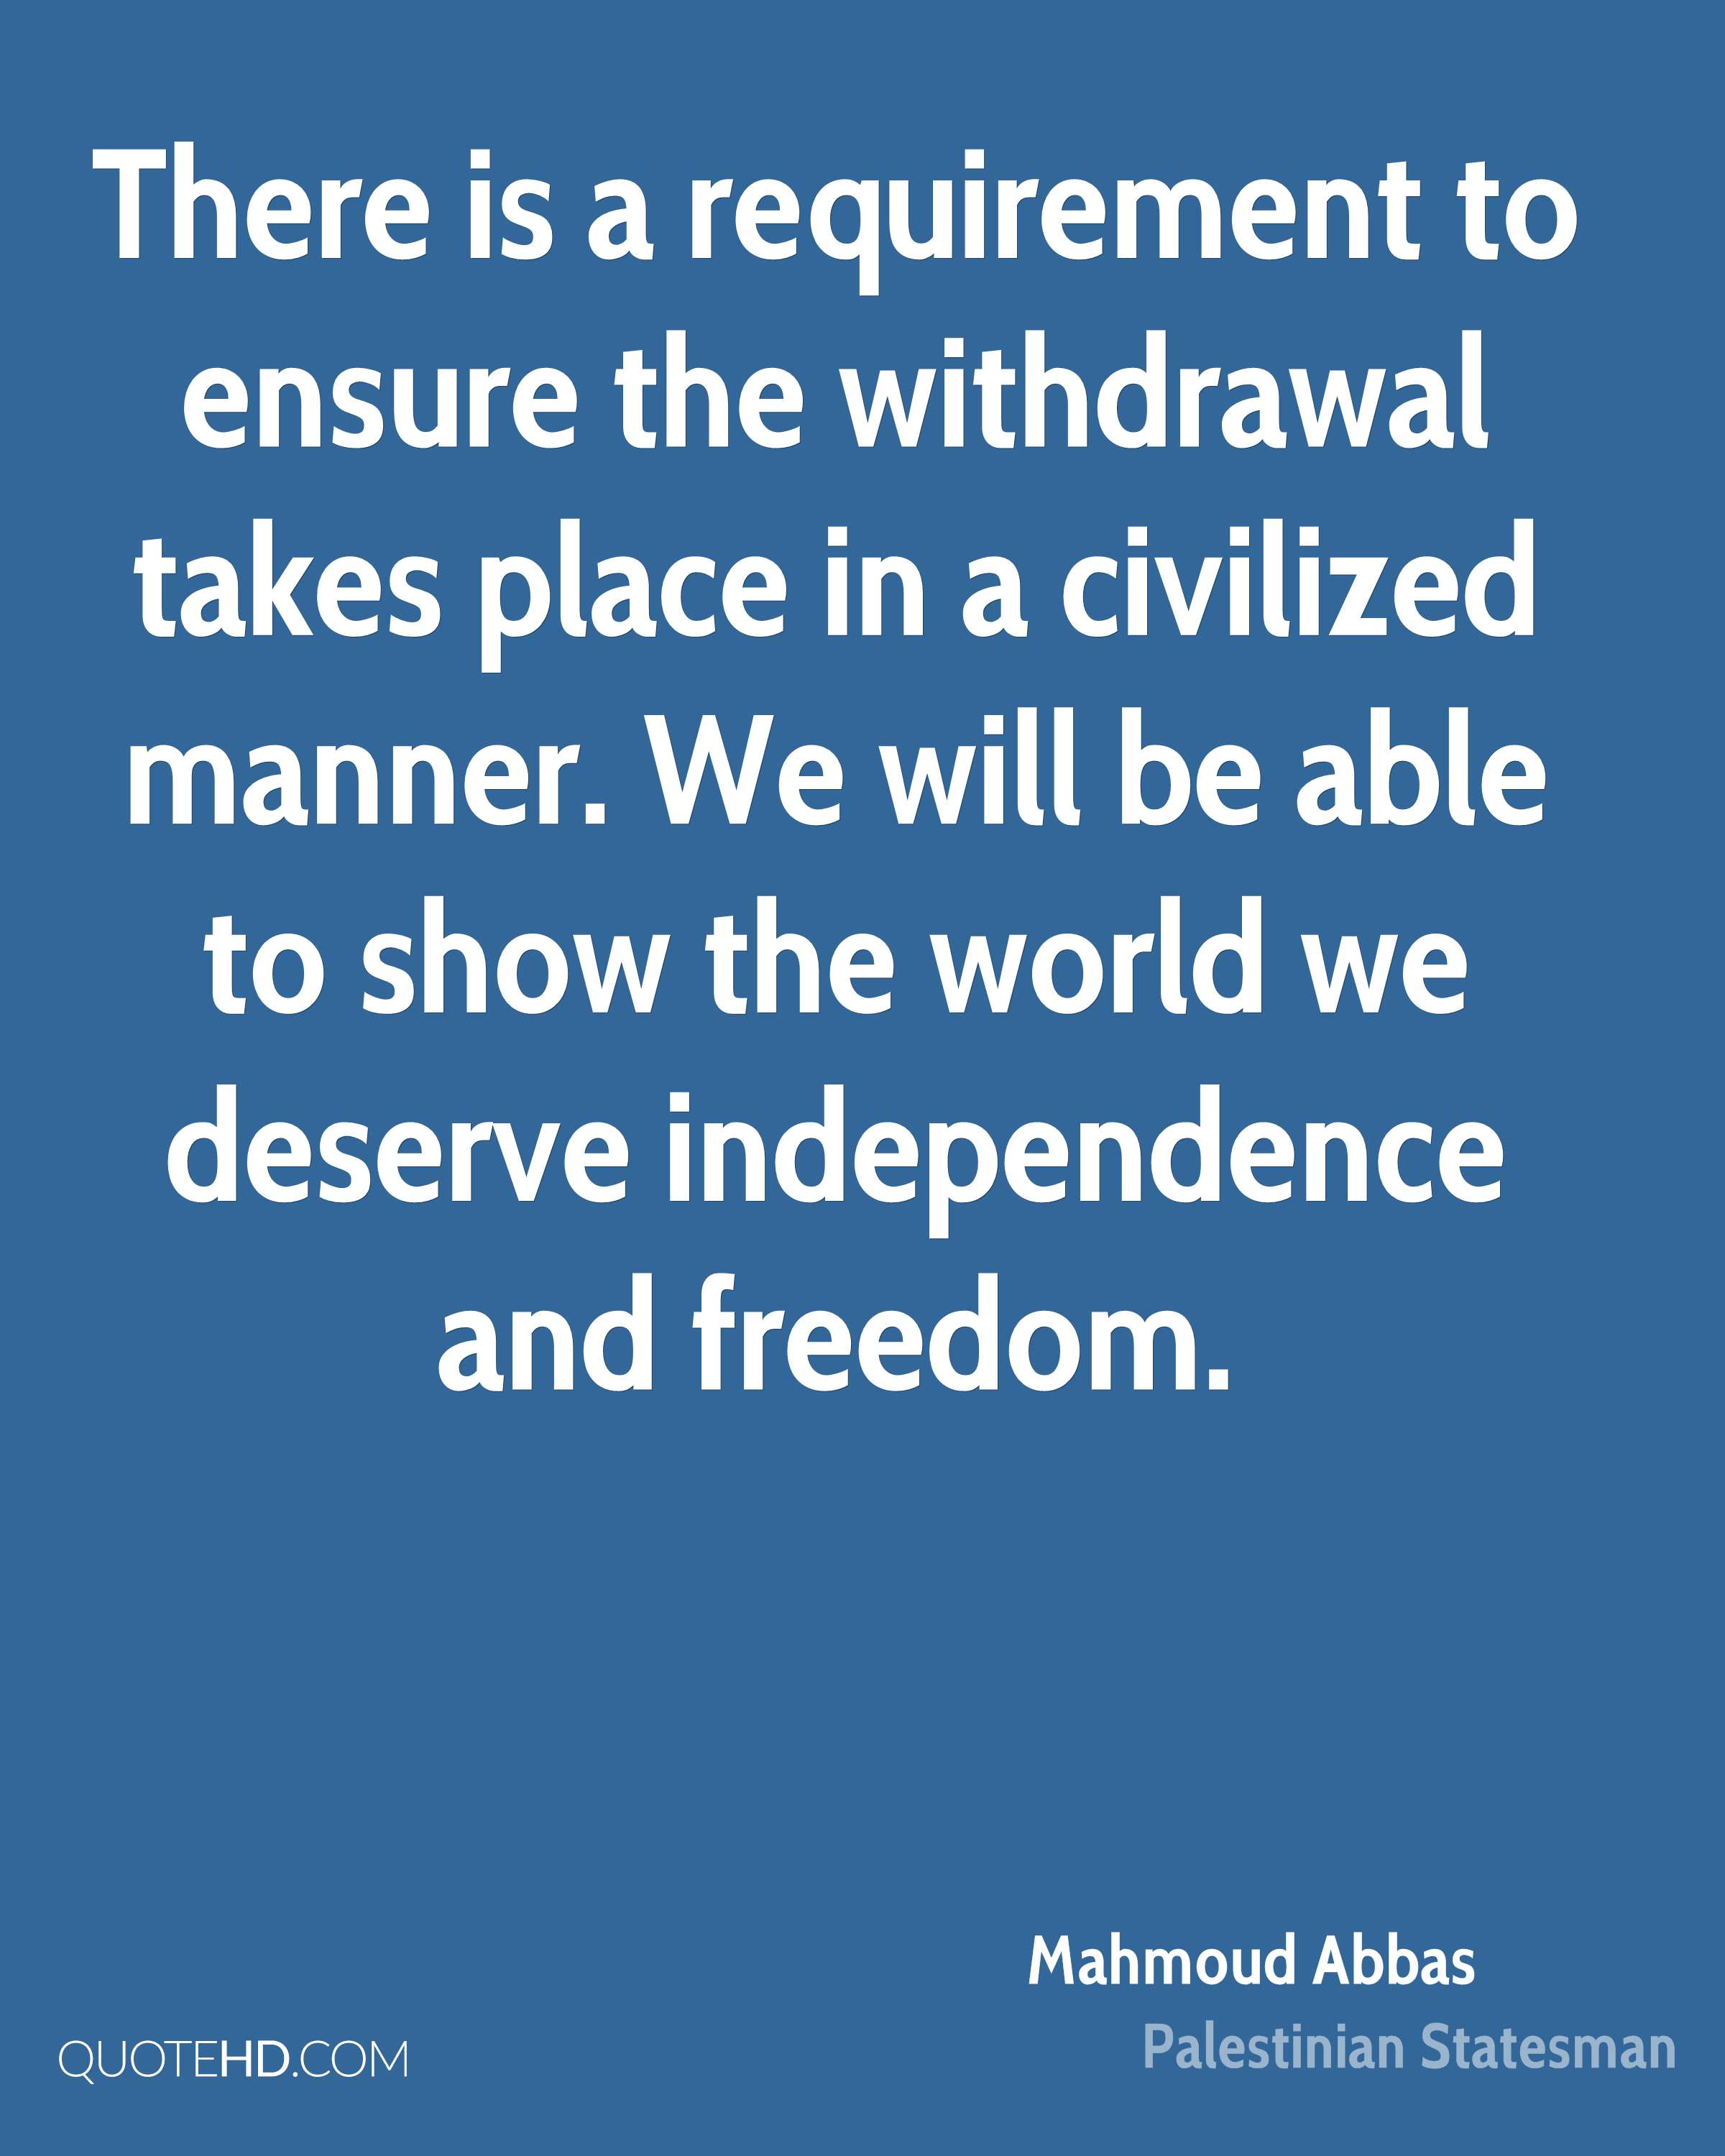 There is a requirement to ensure the withdrawal takes place in a civilized manner. We will be able to show the world we deserve independence and freedom.